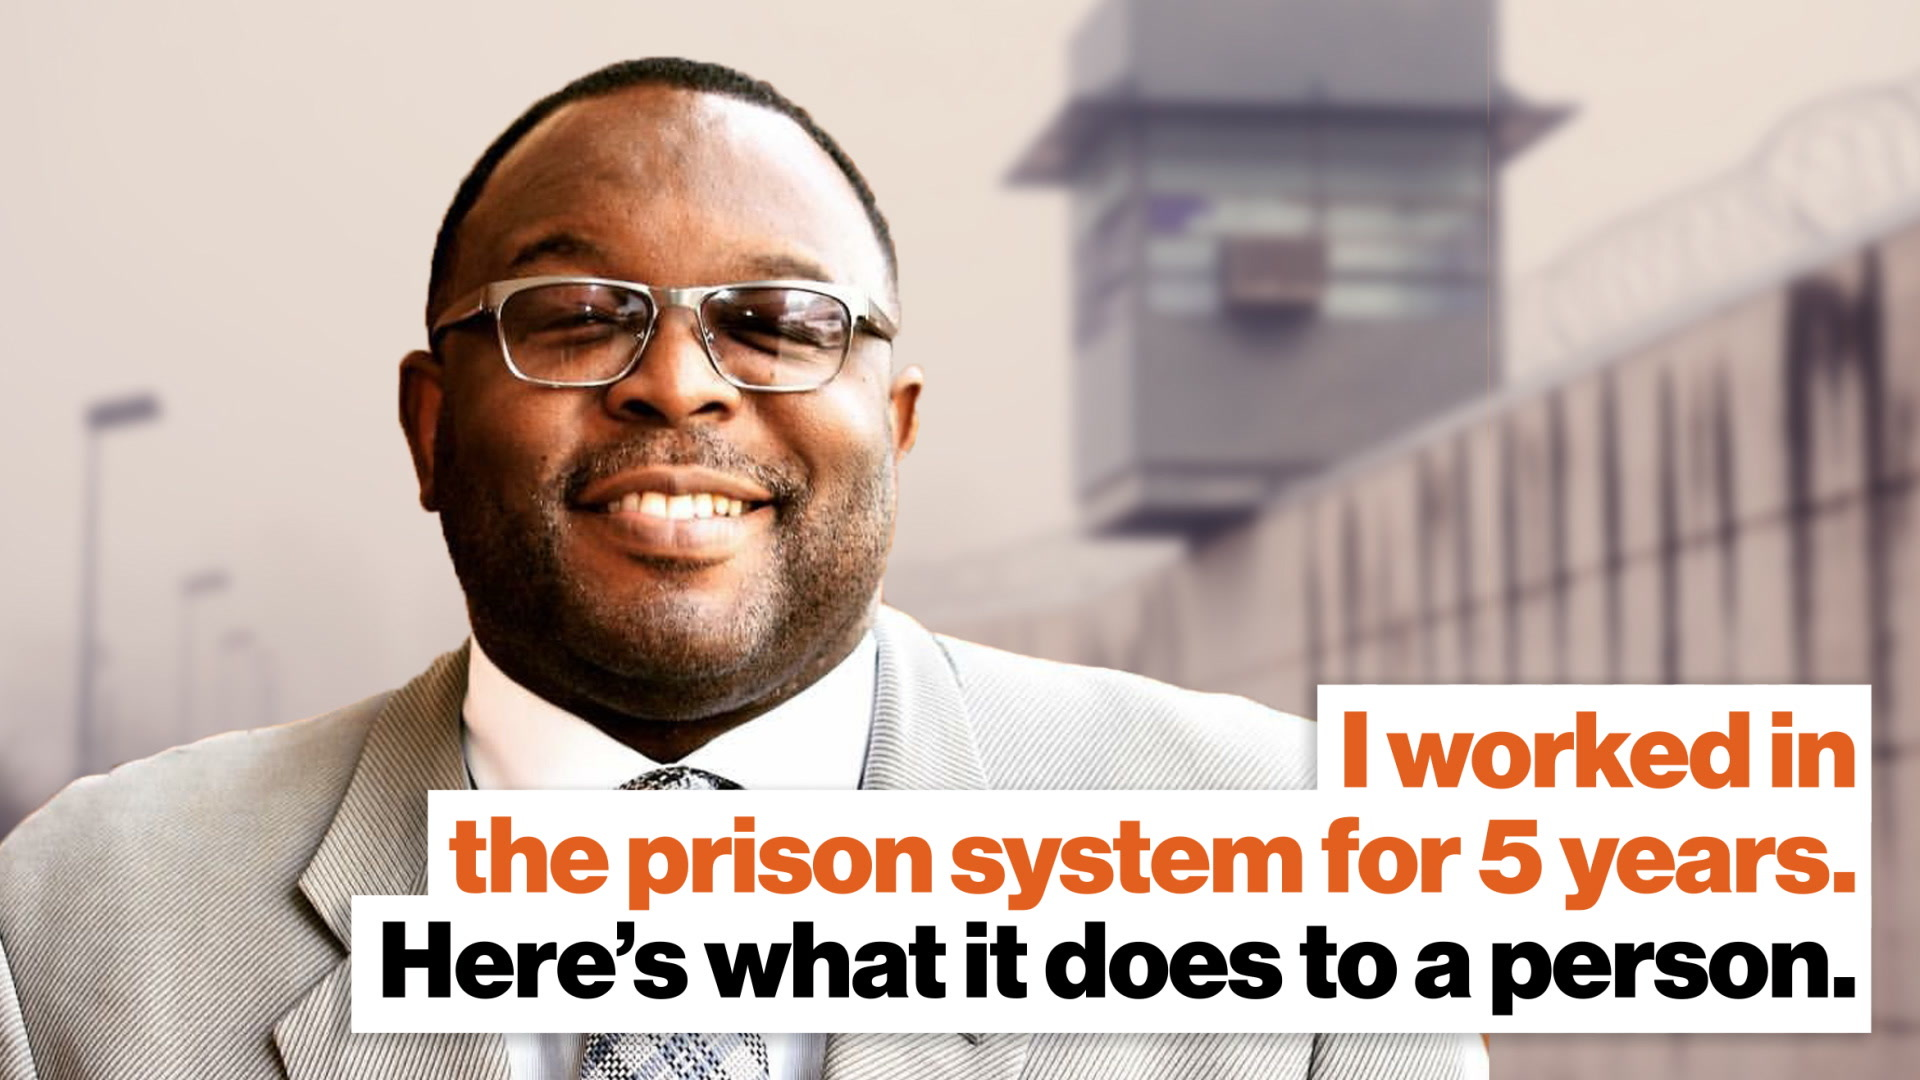 I worked in the prison system for 5 years. Here's what it does to a person.